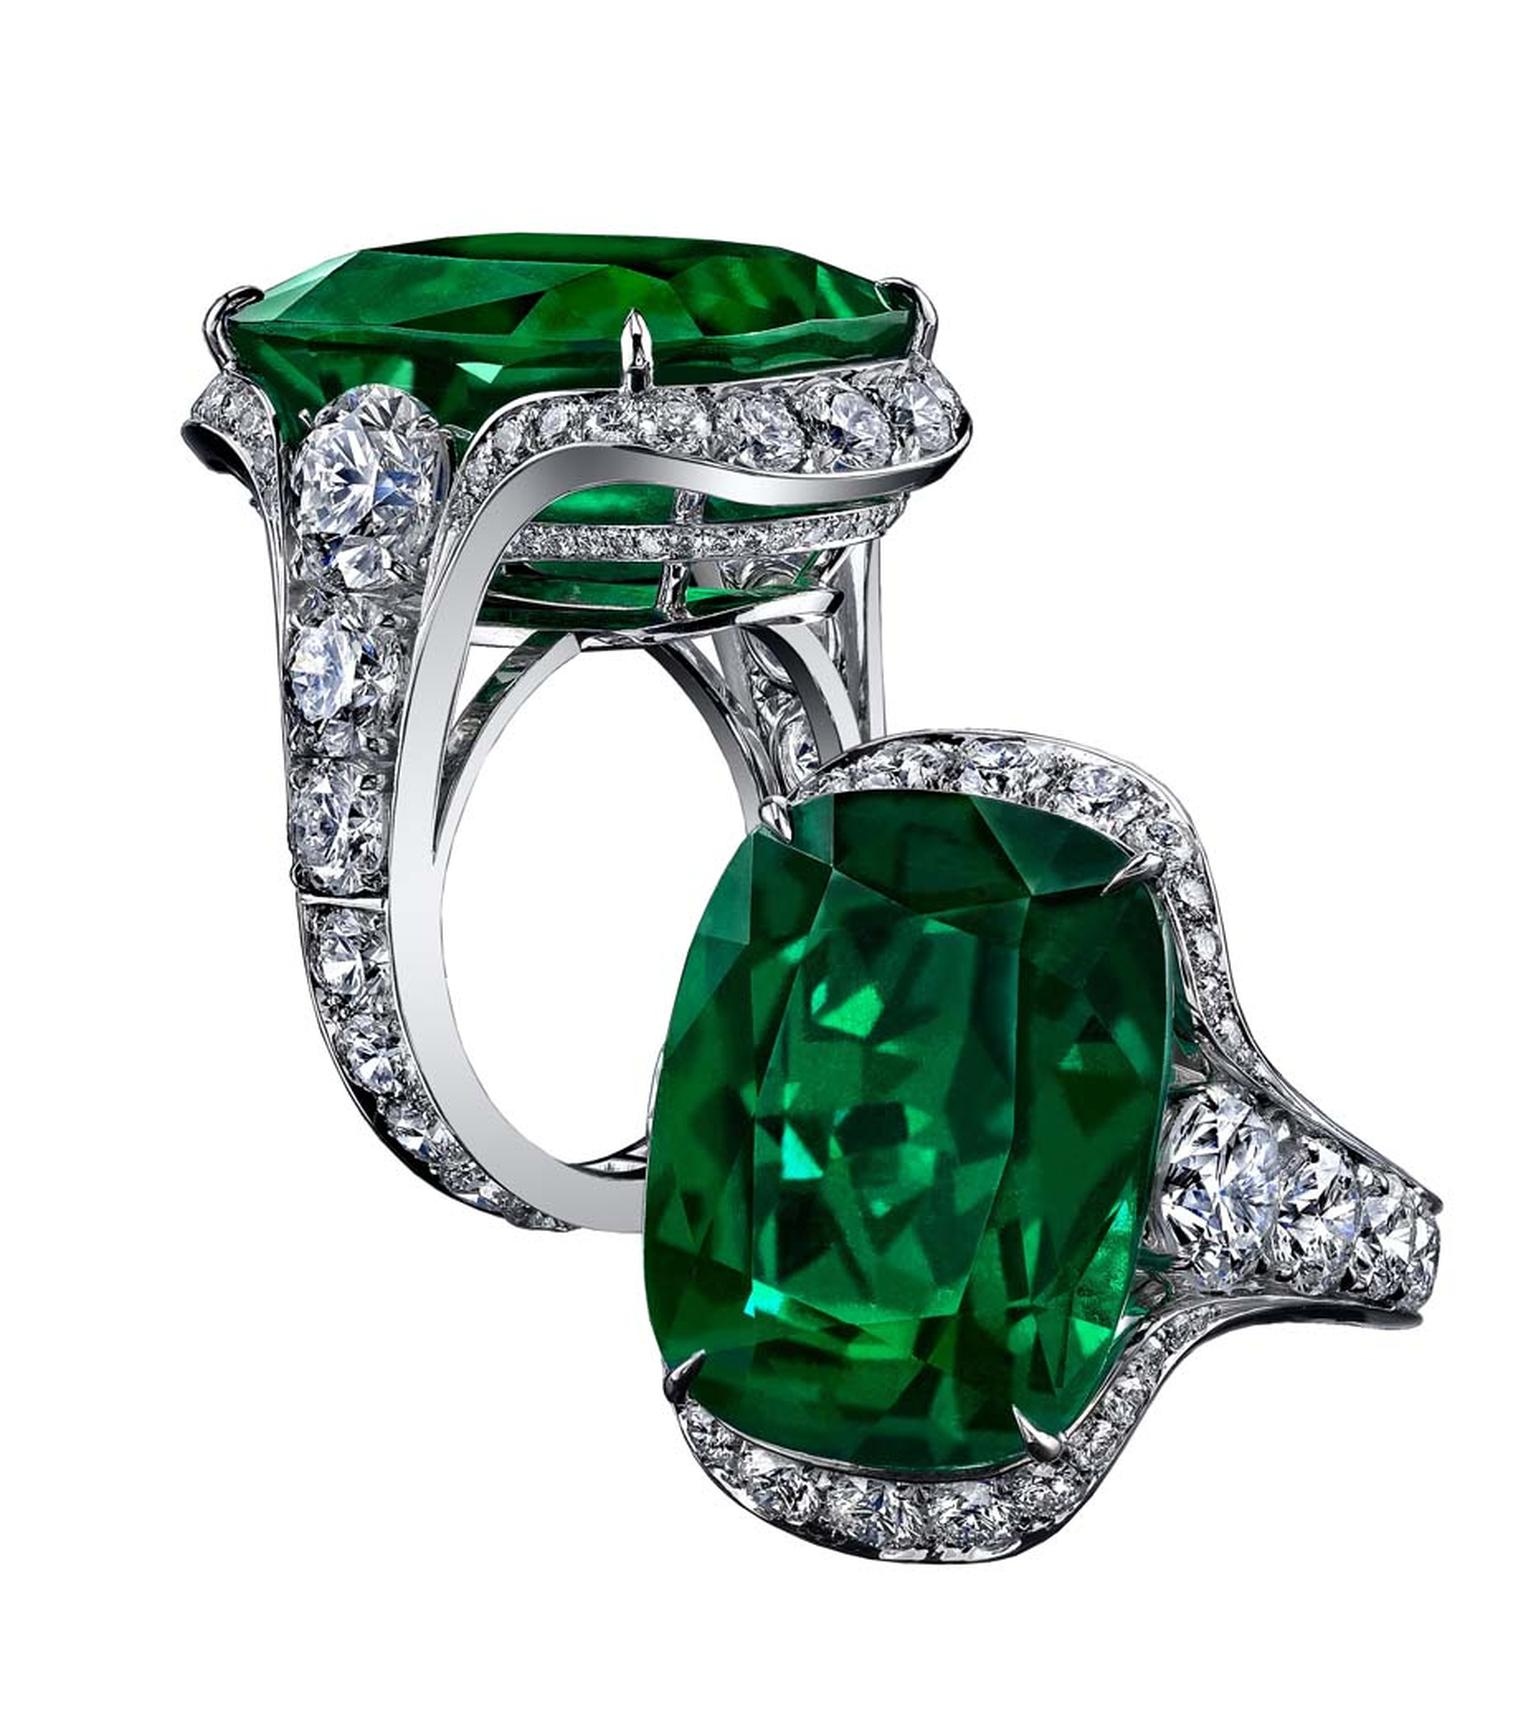 Robert Procop Exceptional Jewels collection 23.03ct Cushion Emerald ring